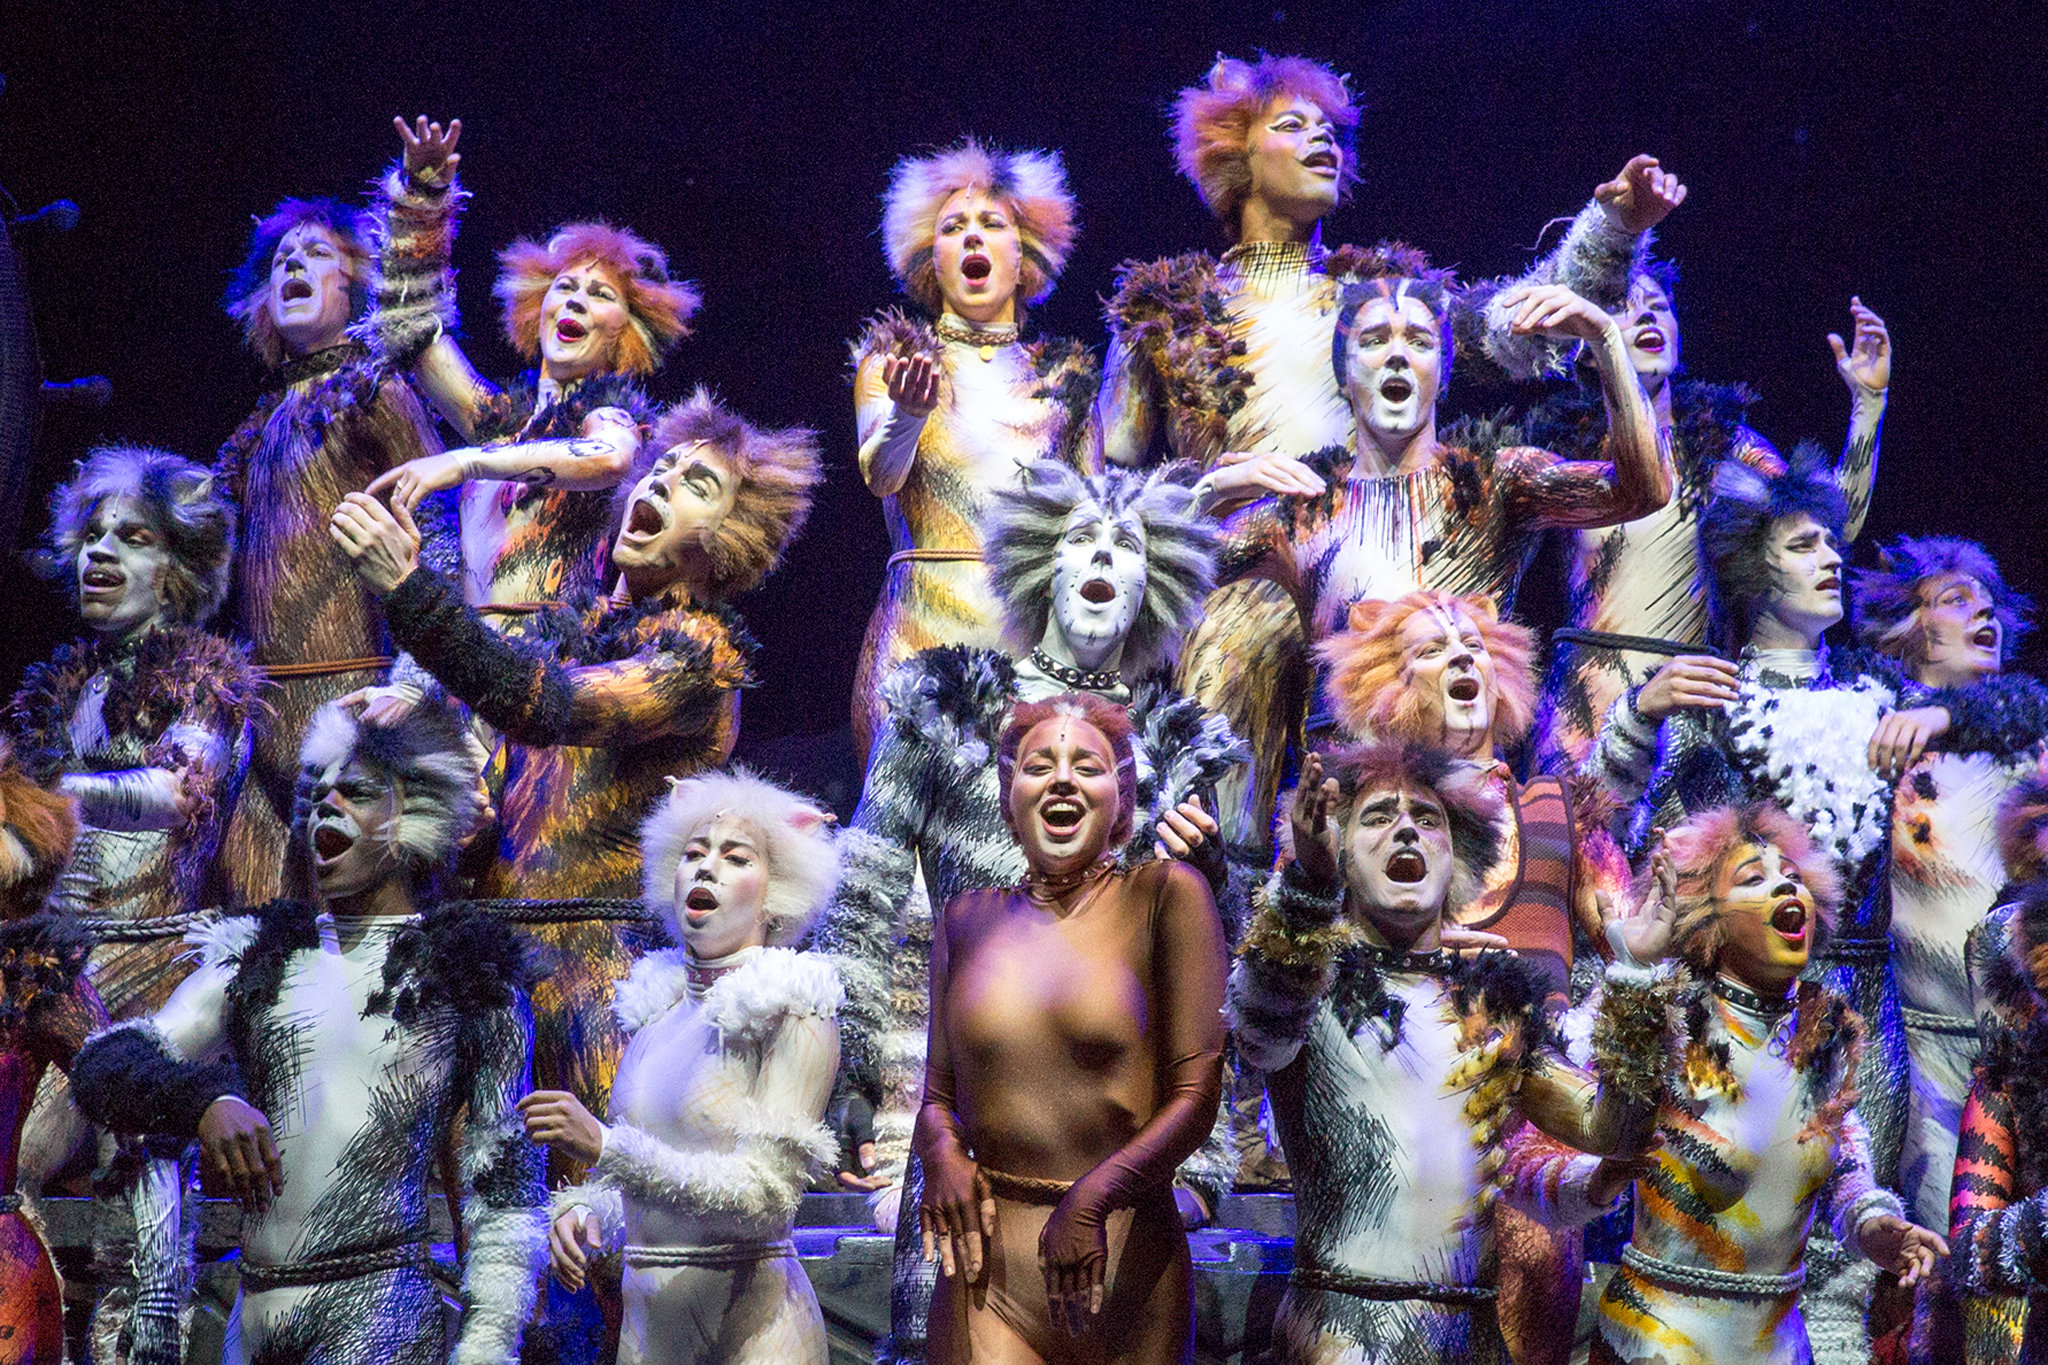 The 'Cats' ensemble rehearsing in June. Photo credit: Richard Termine for The New York Times